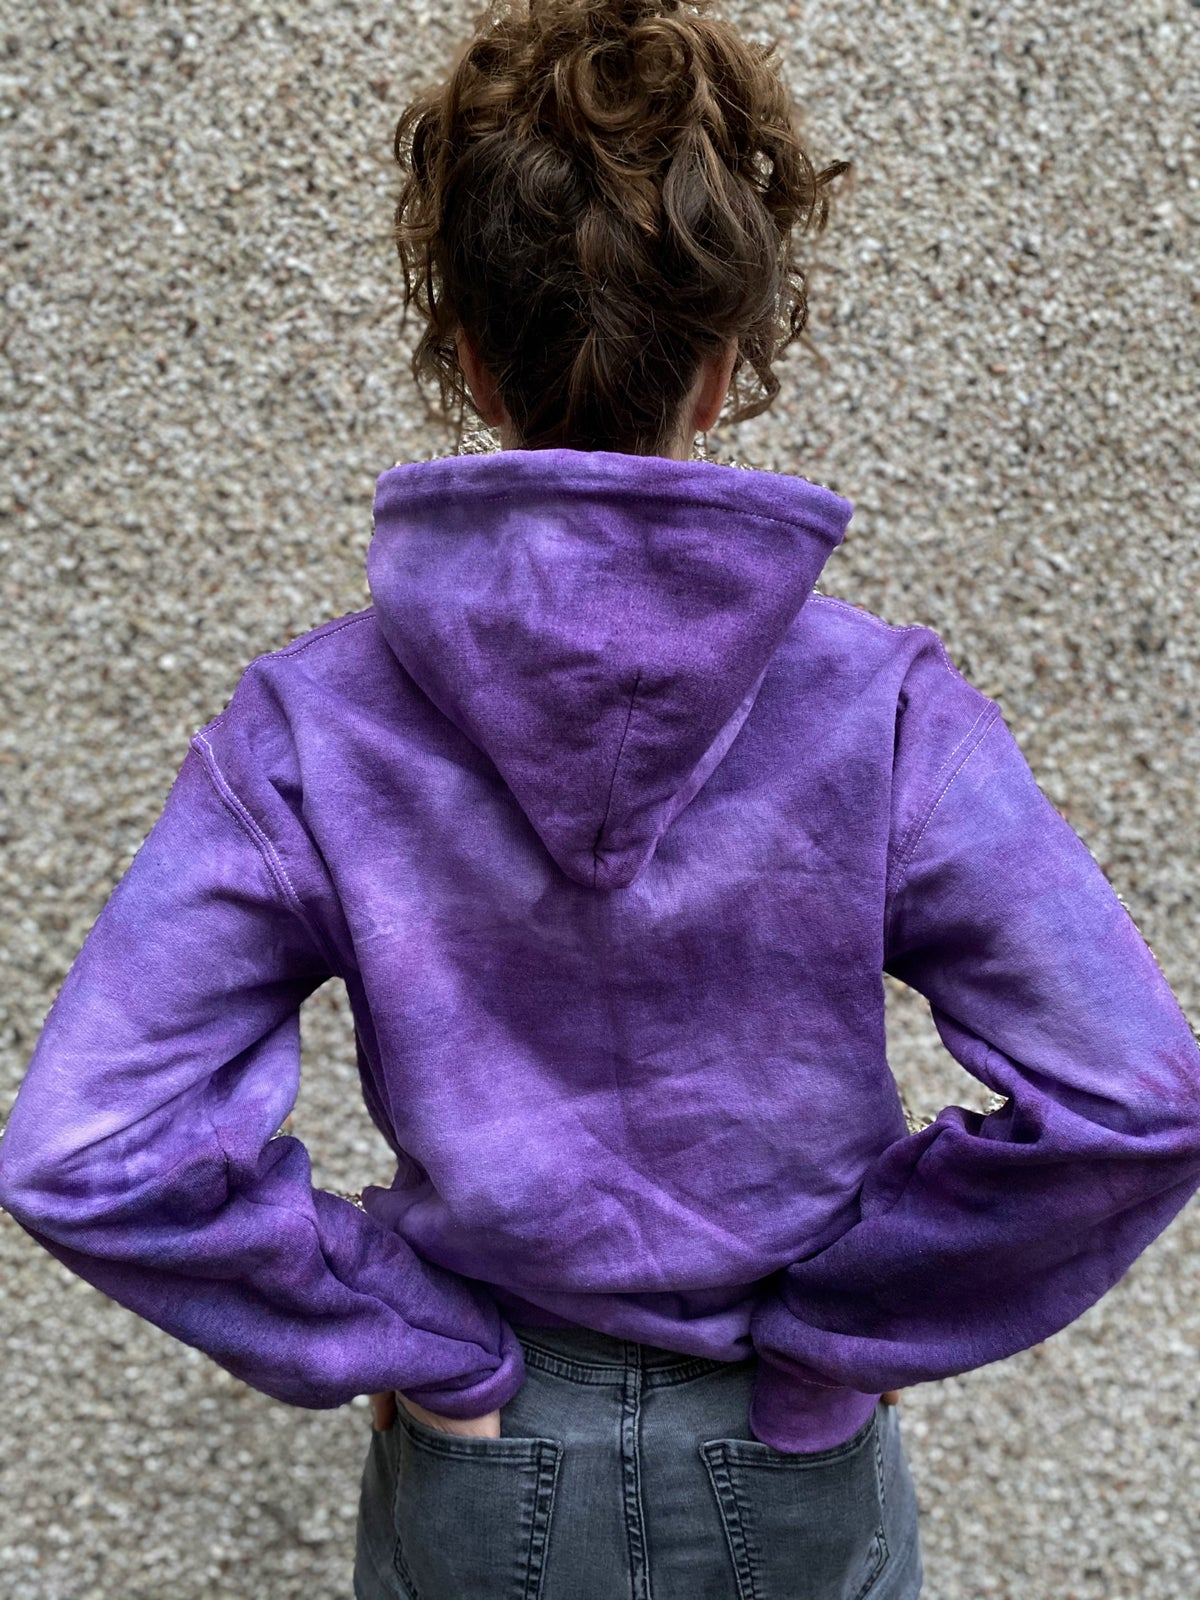 Image of Purple Tie-Dye Hoodie (Small)